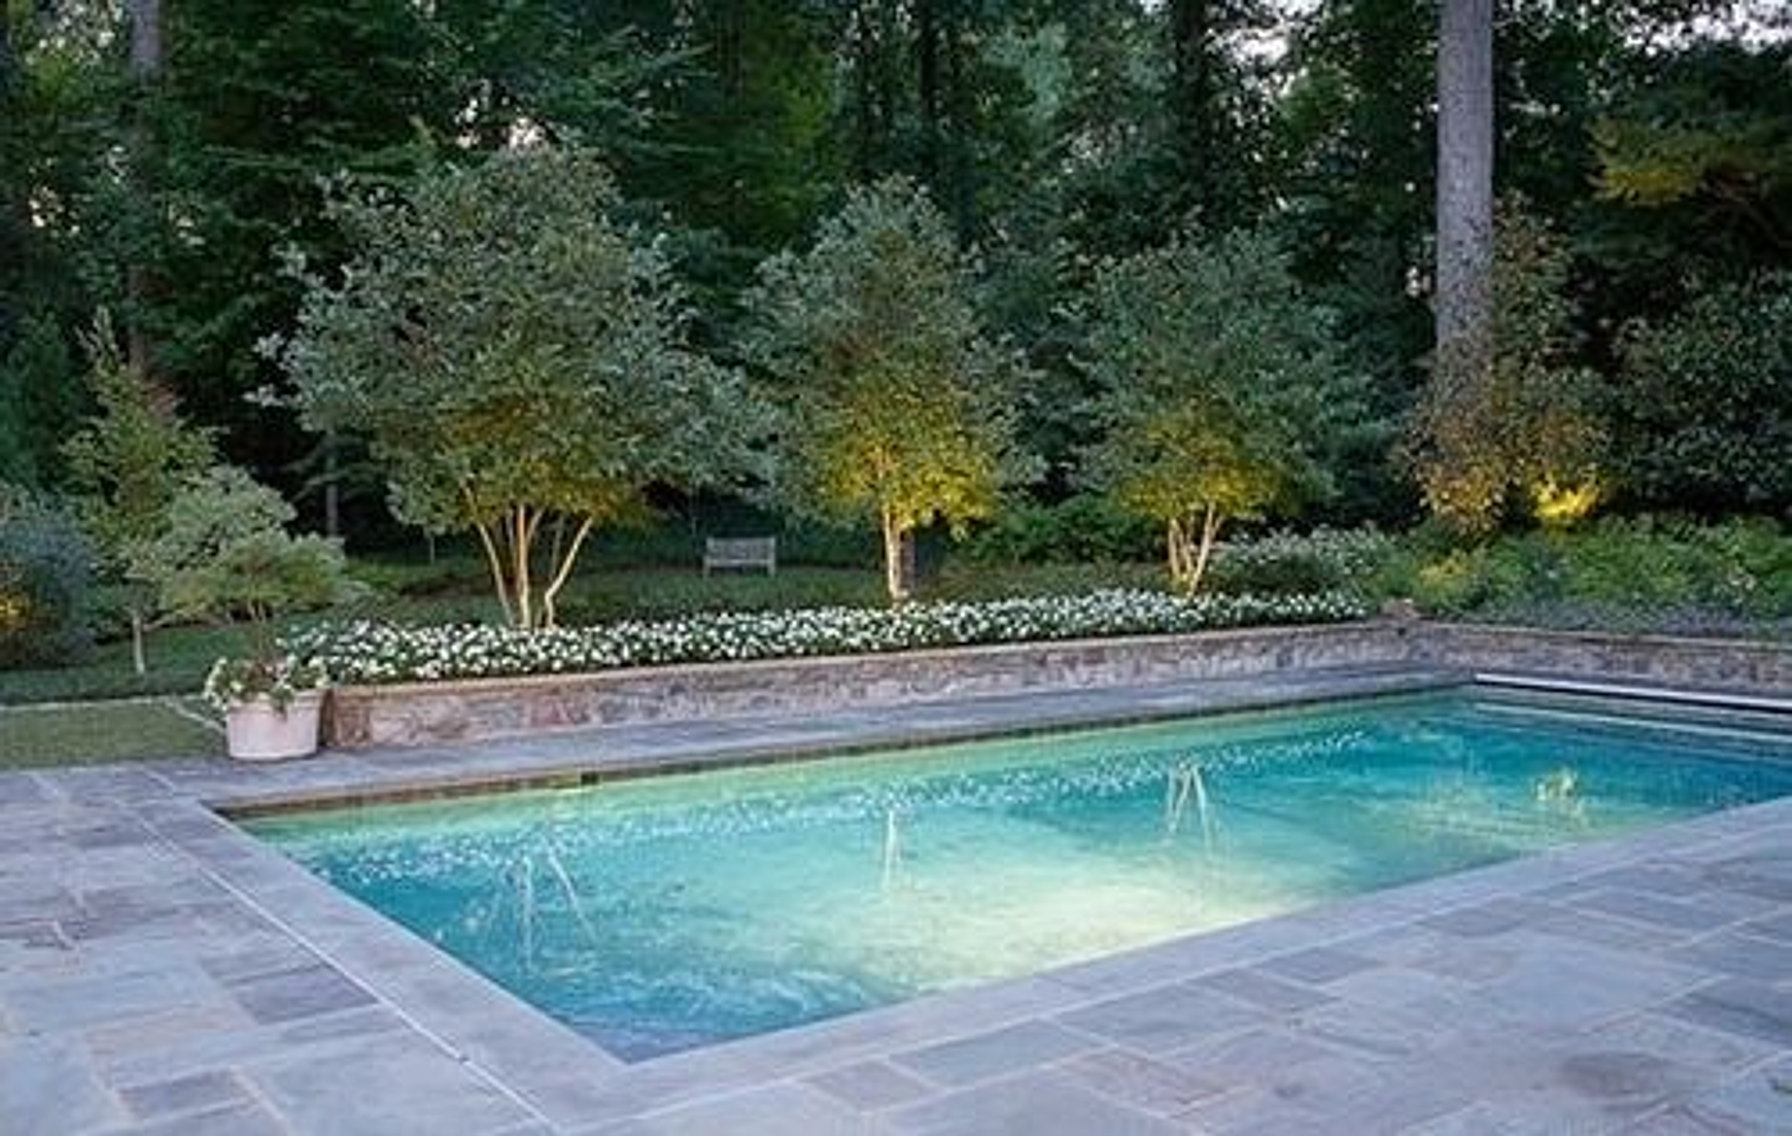 Pool Privacy Screen Ideas pittsburgh outdoor living /home | privacy screen ideas